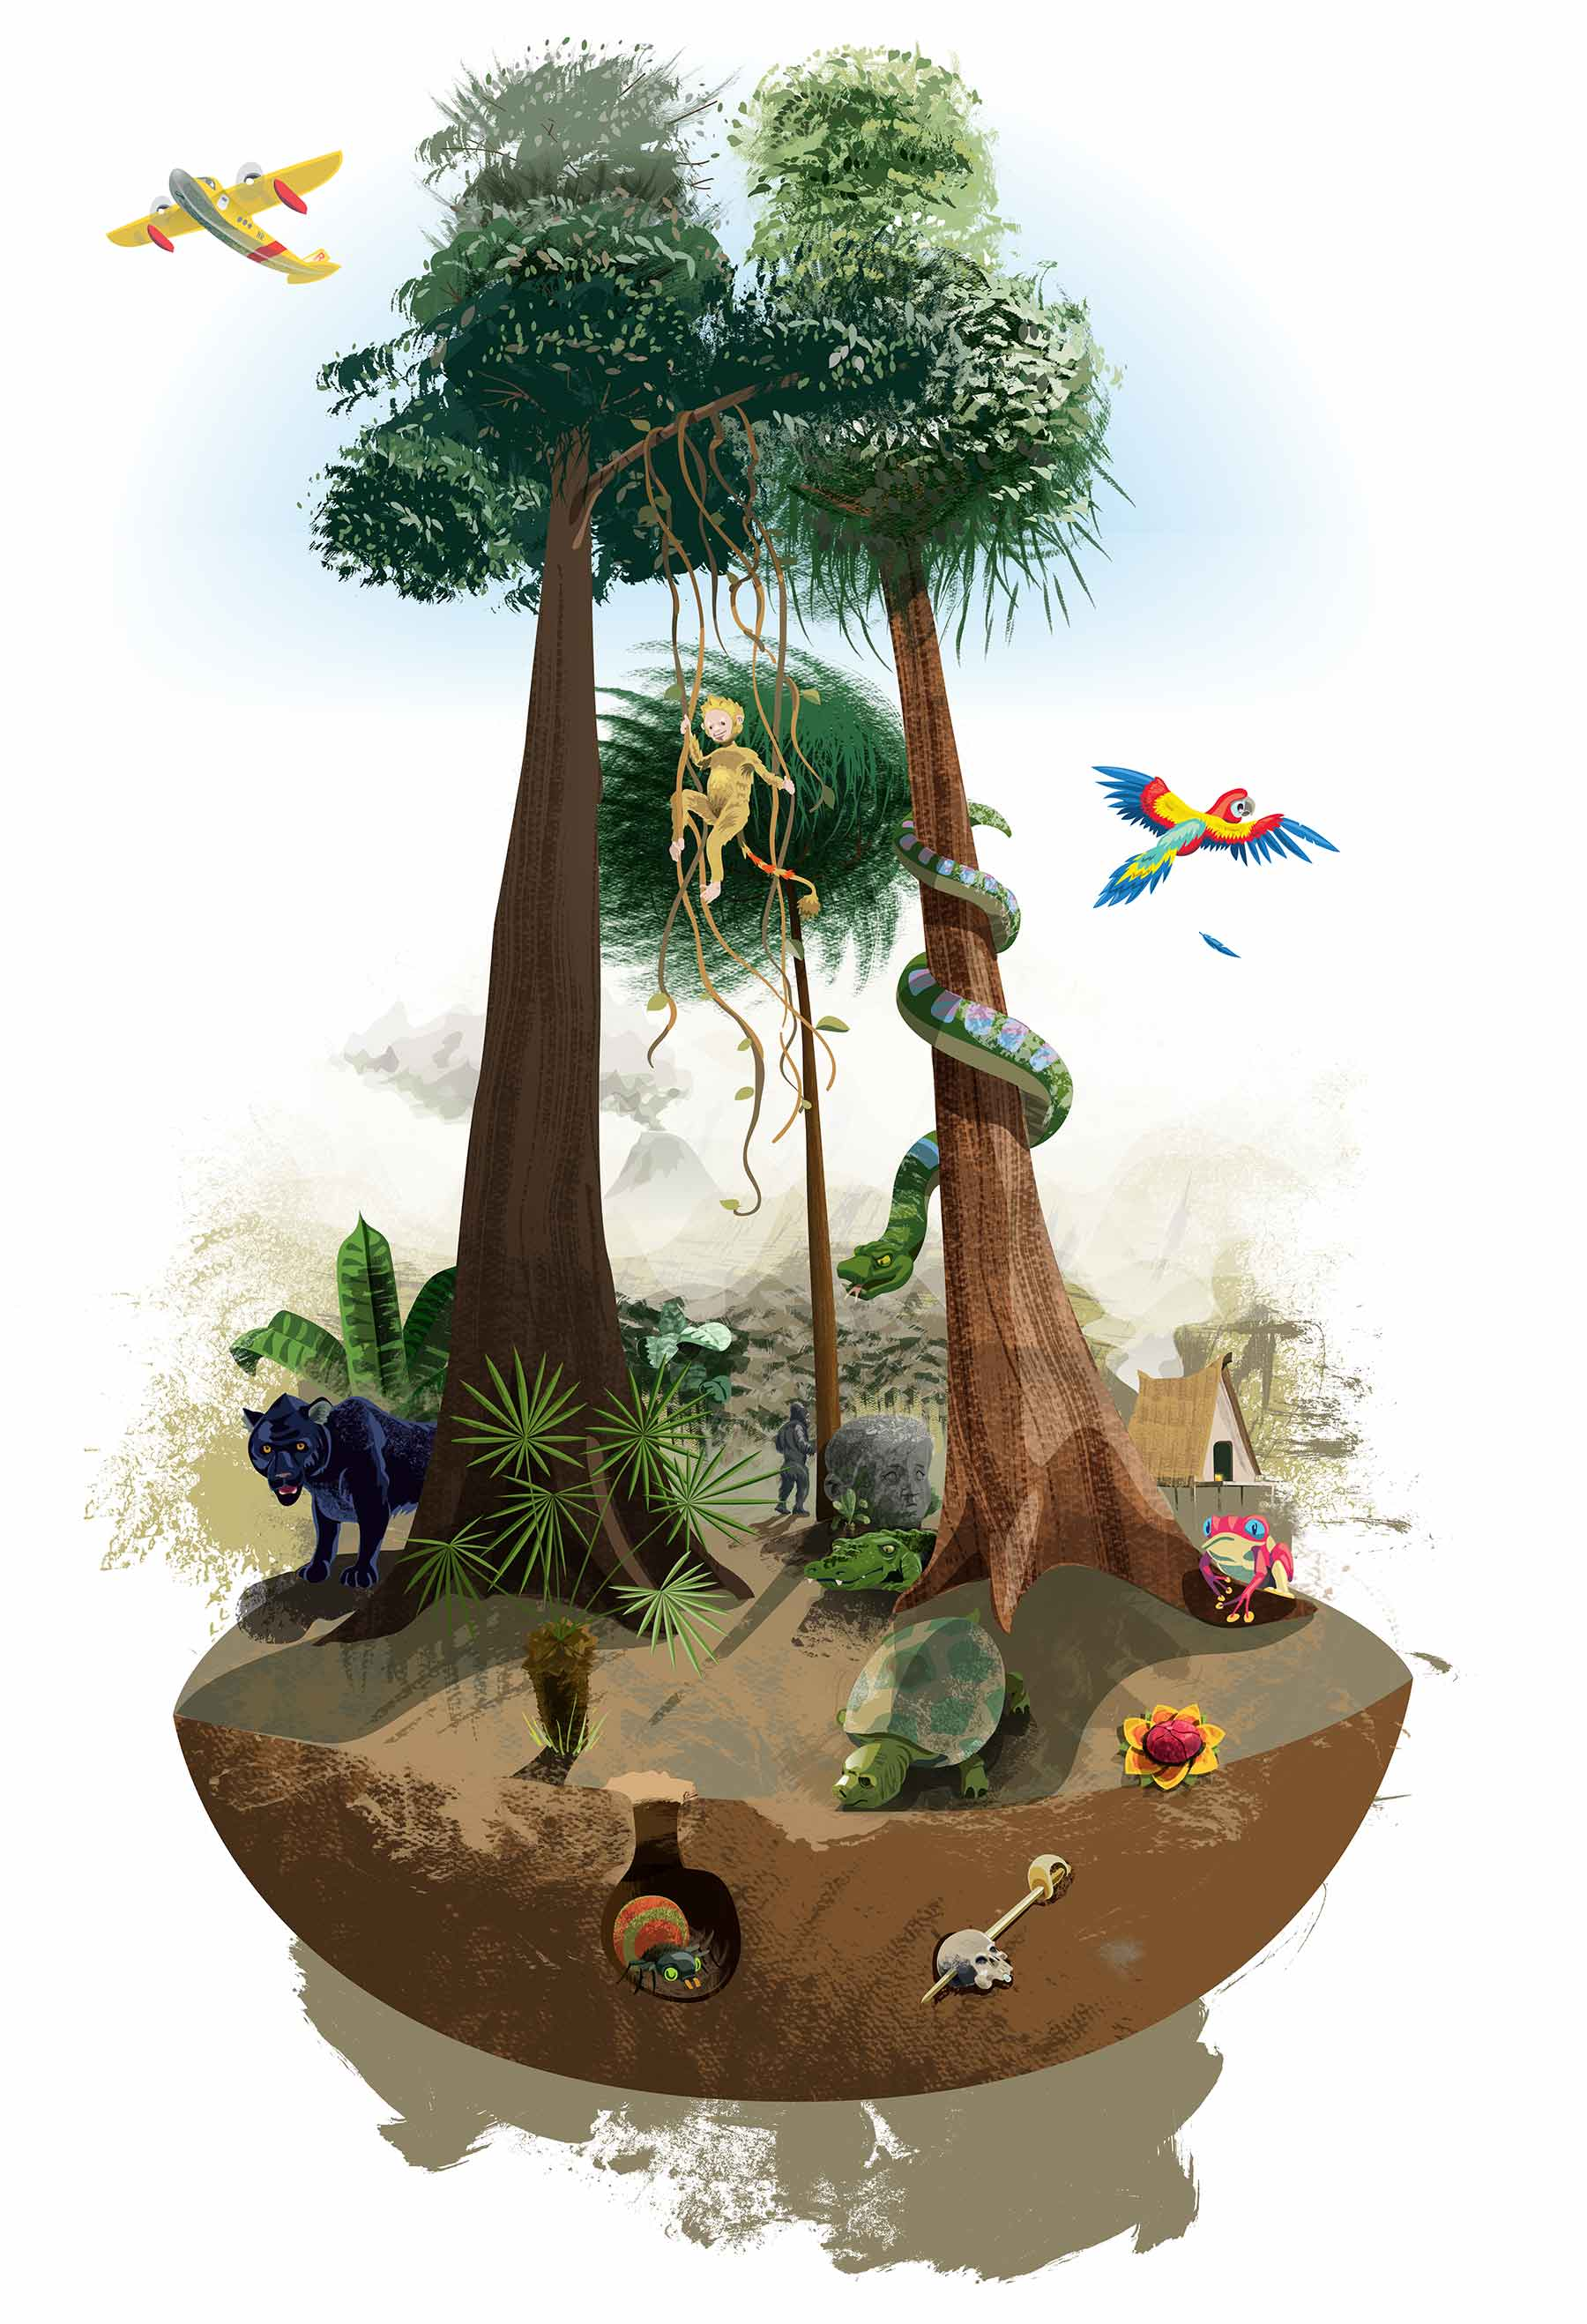 All jungle life is dwarfed by the elevated canopy, childrens imagination reaches higher